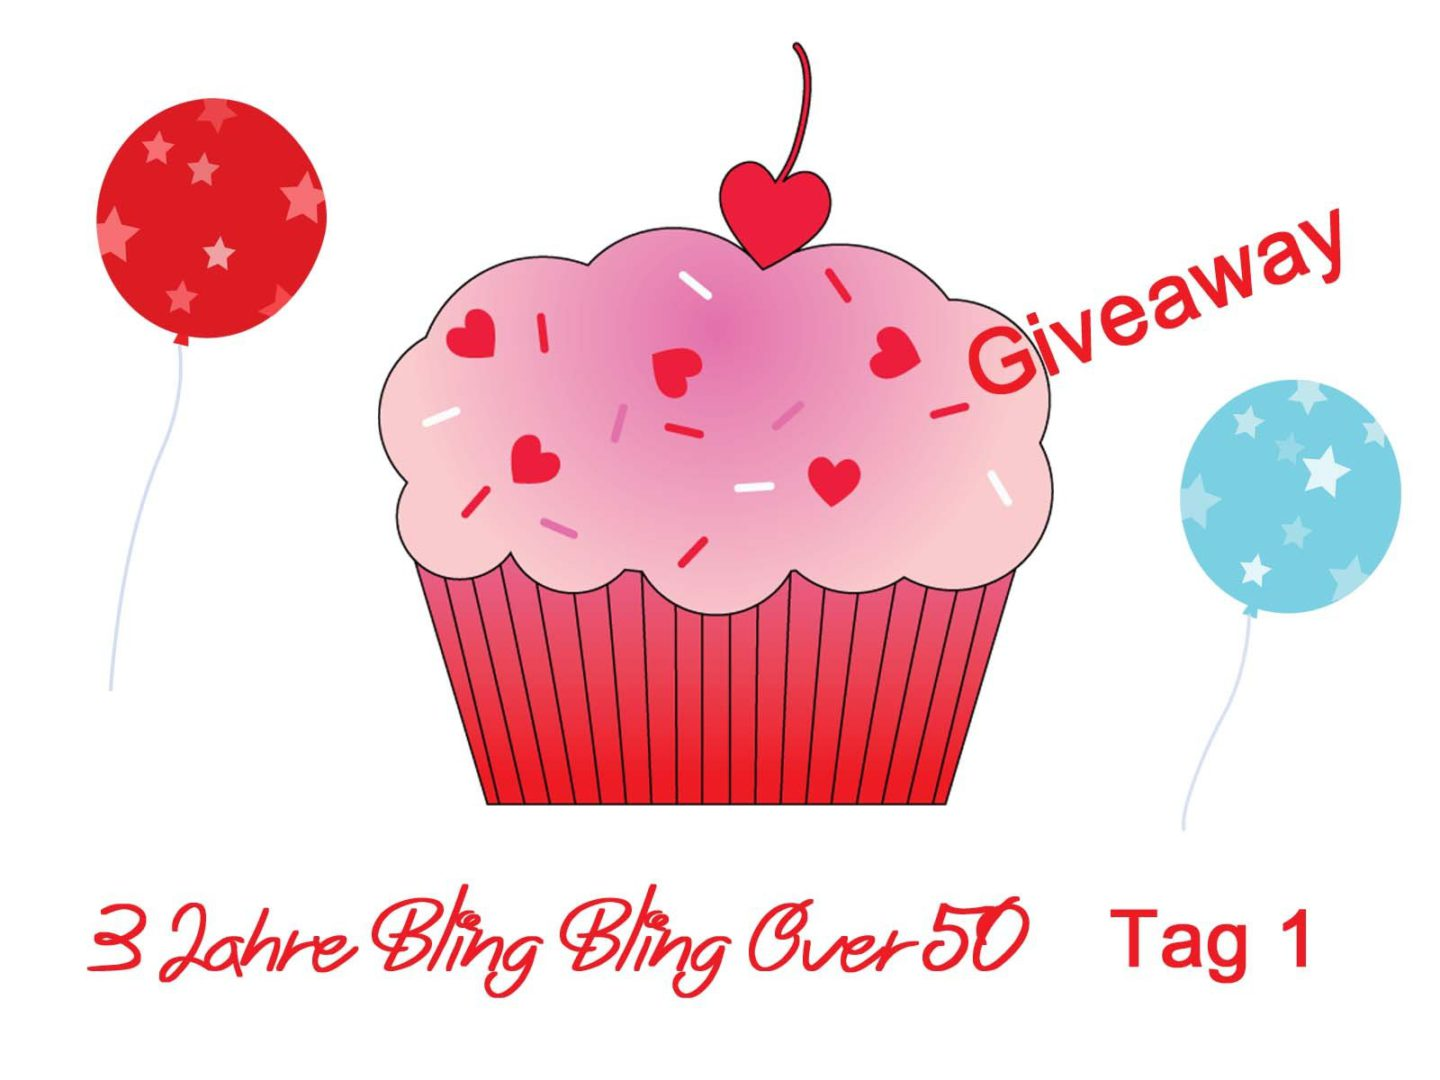 3 Jahre Bling Bling Over 50 – Giveaway Tag 1